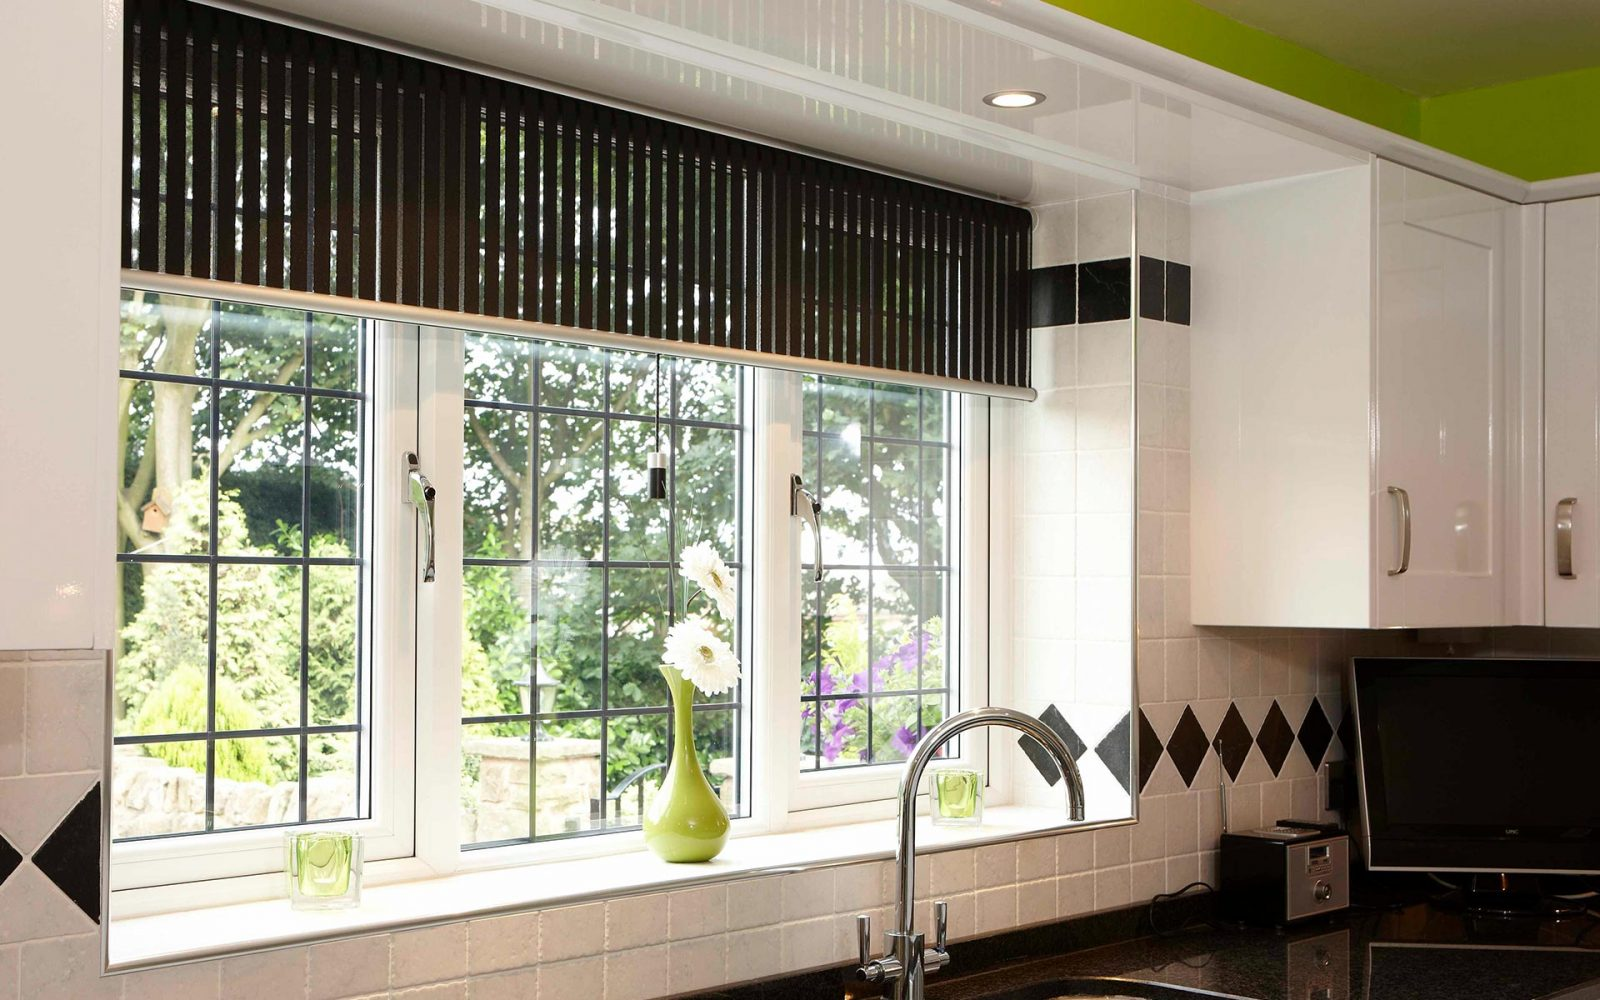 uPVC windows with lead detail internal shot from kitchen